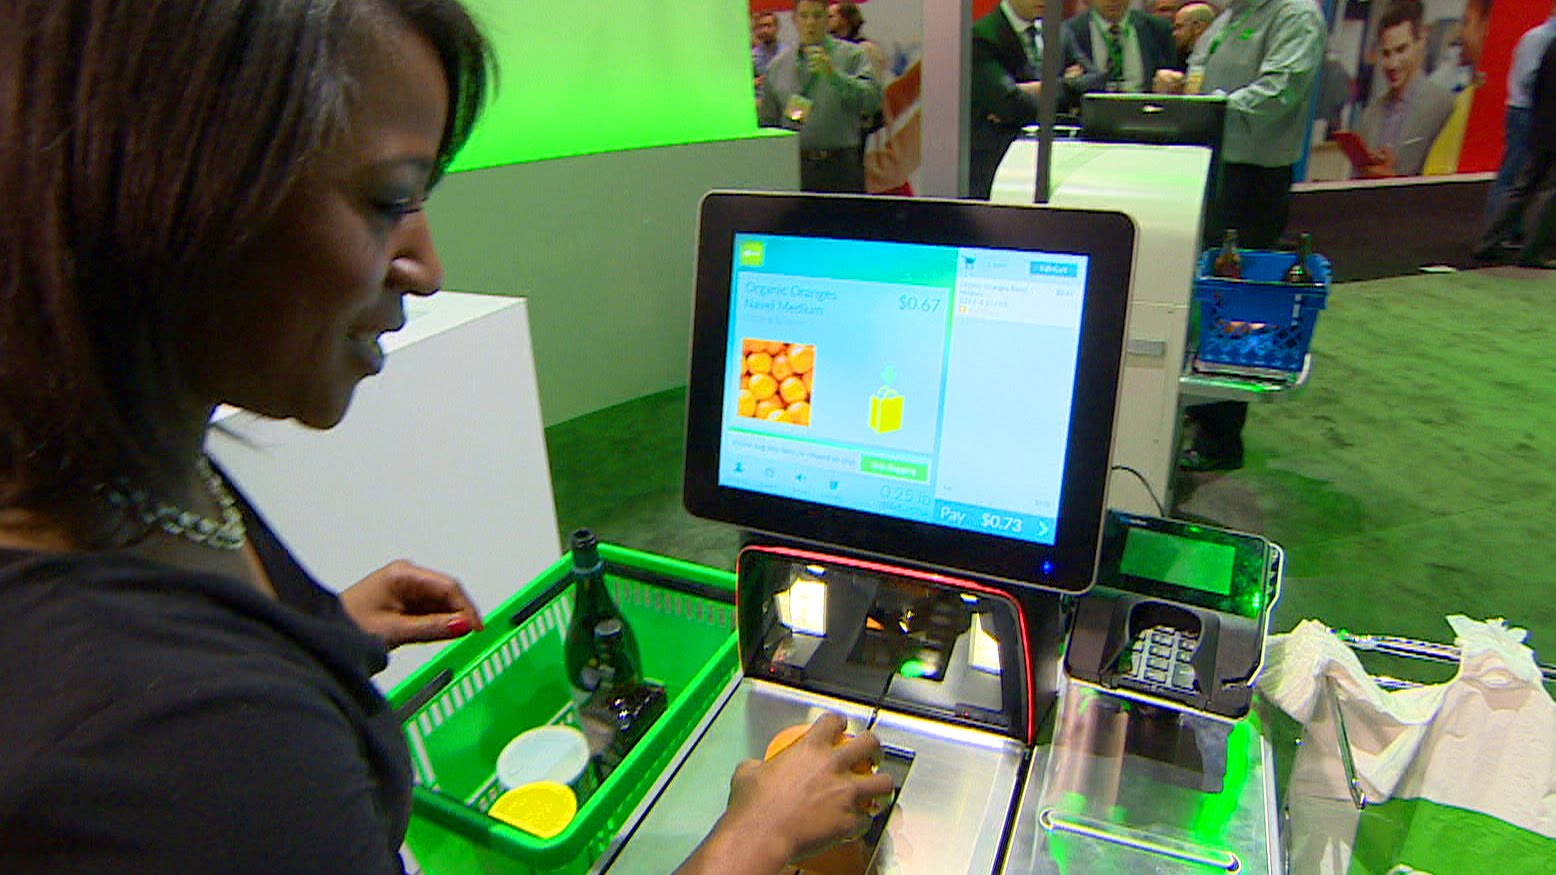 Self-checkouts vs. cashiers: Which is better? (CBC Marketplace) – YouTube